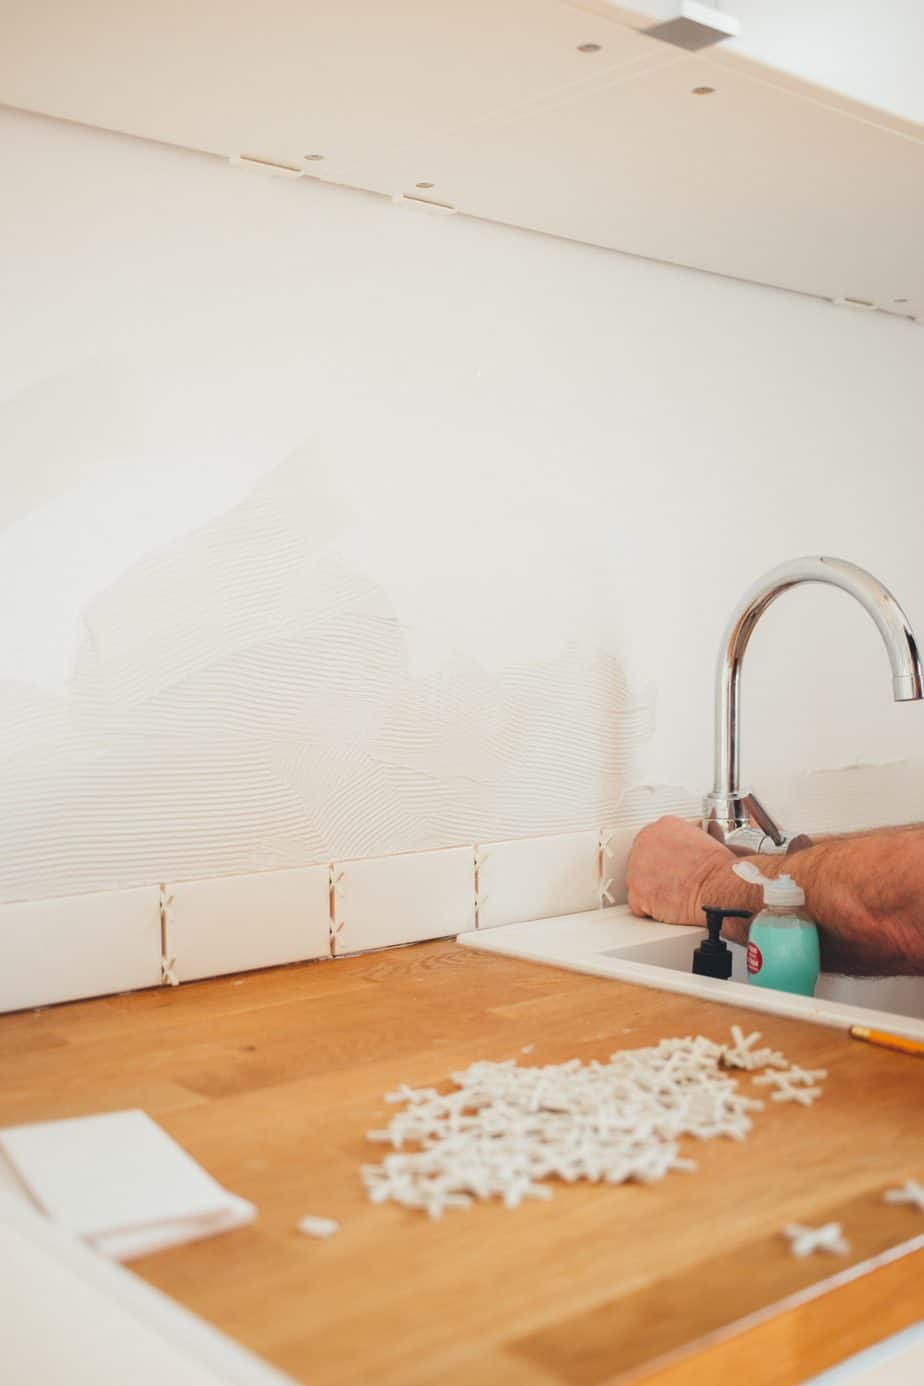 Hire A Commercial Plumbing Contractor